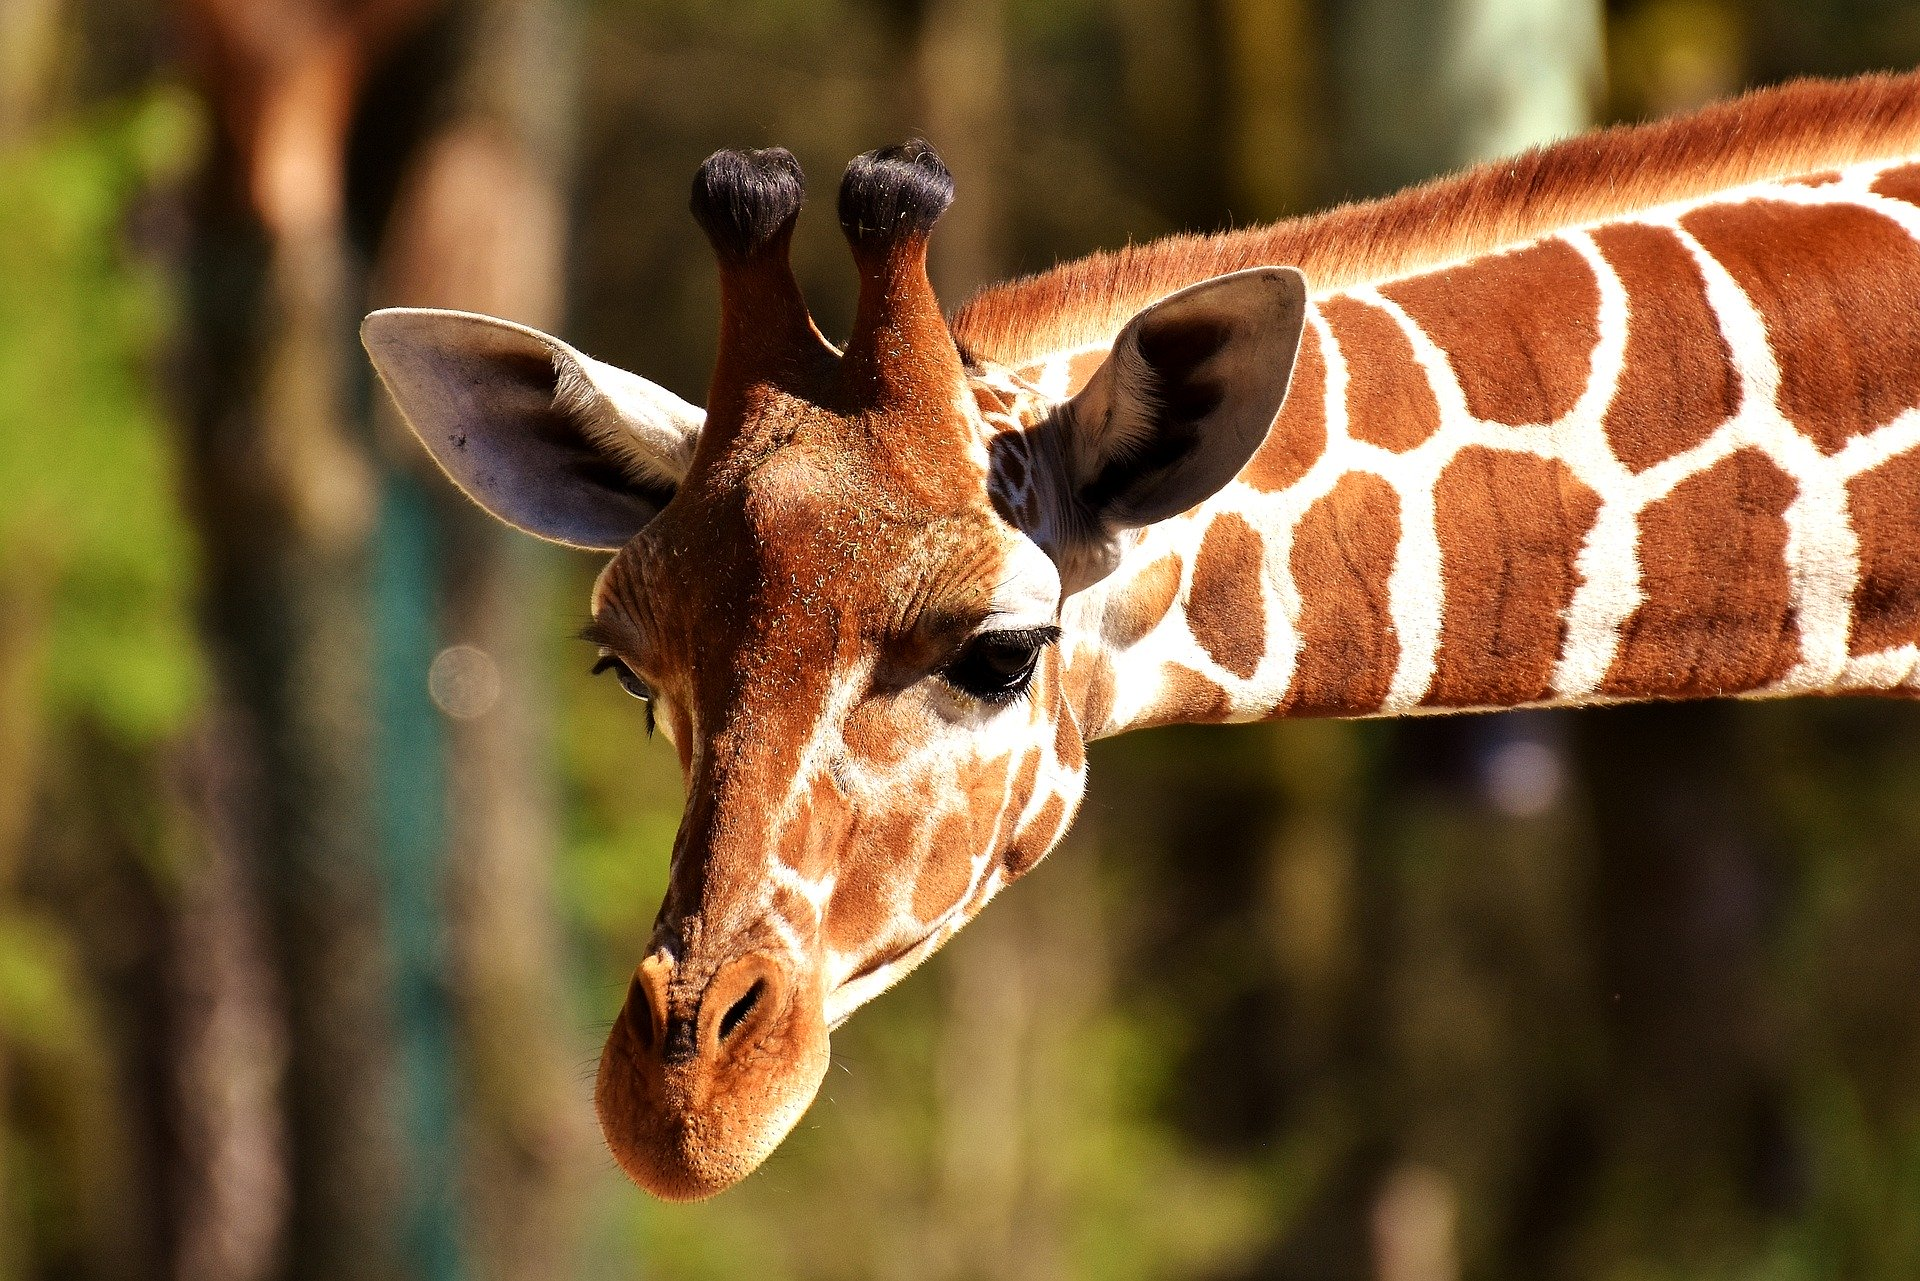 Applications Invited for £100m Zoo Animals Fund